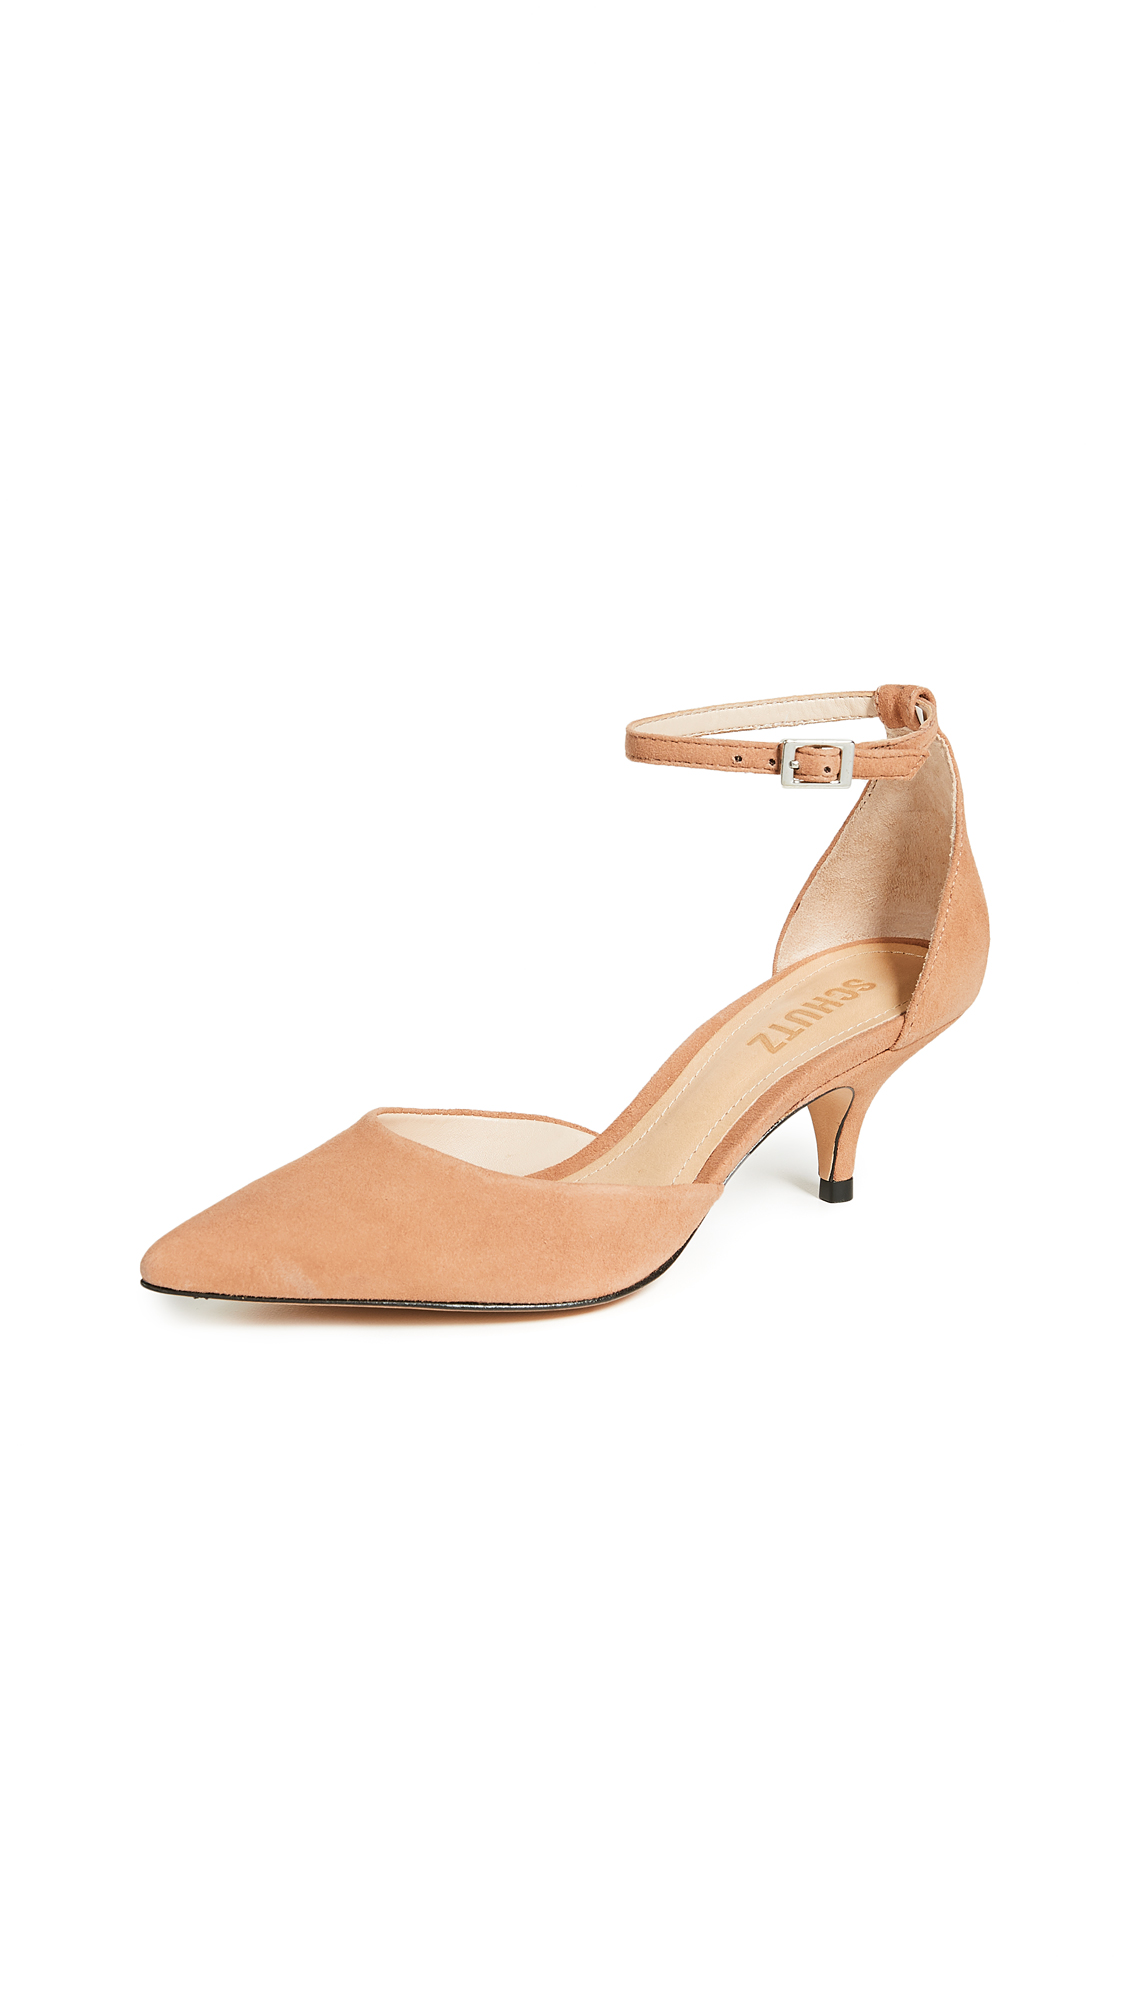 Schutz Kamilli dOrsay Pumps - Toasted Nut